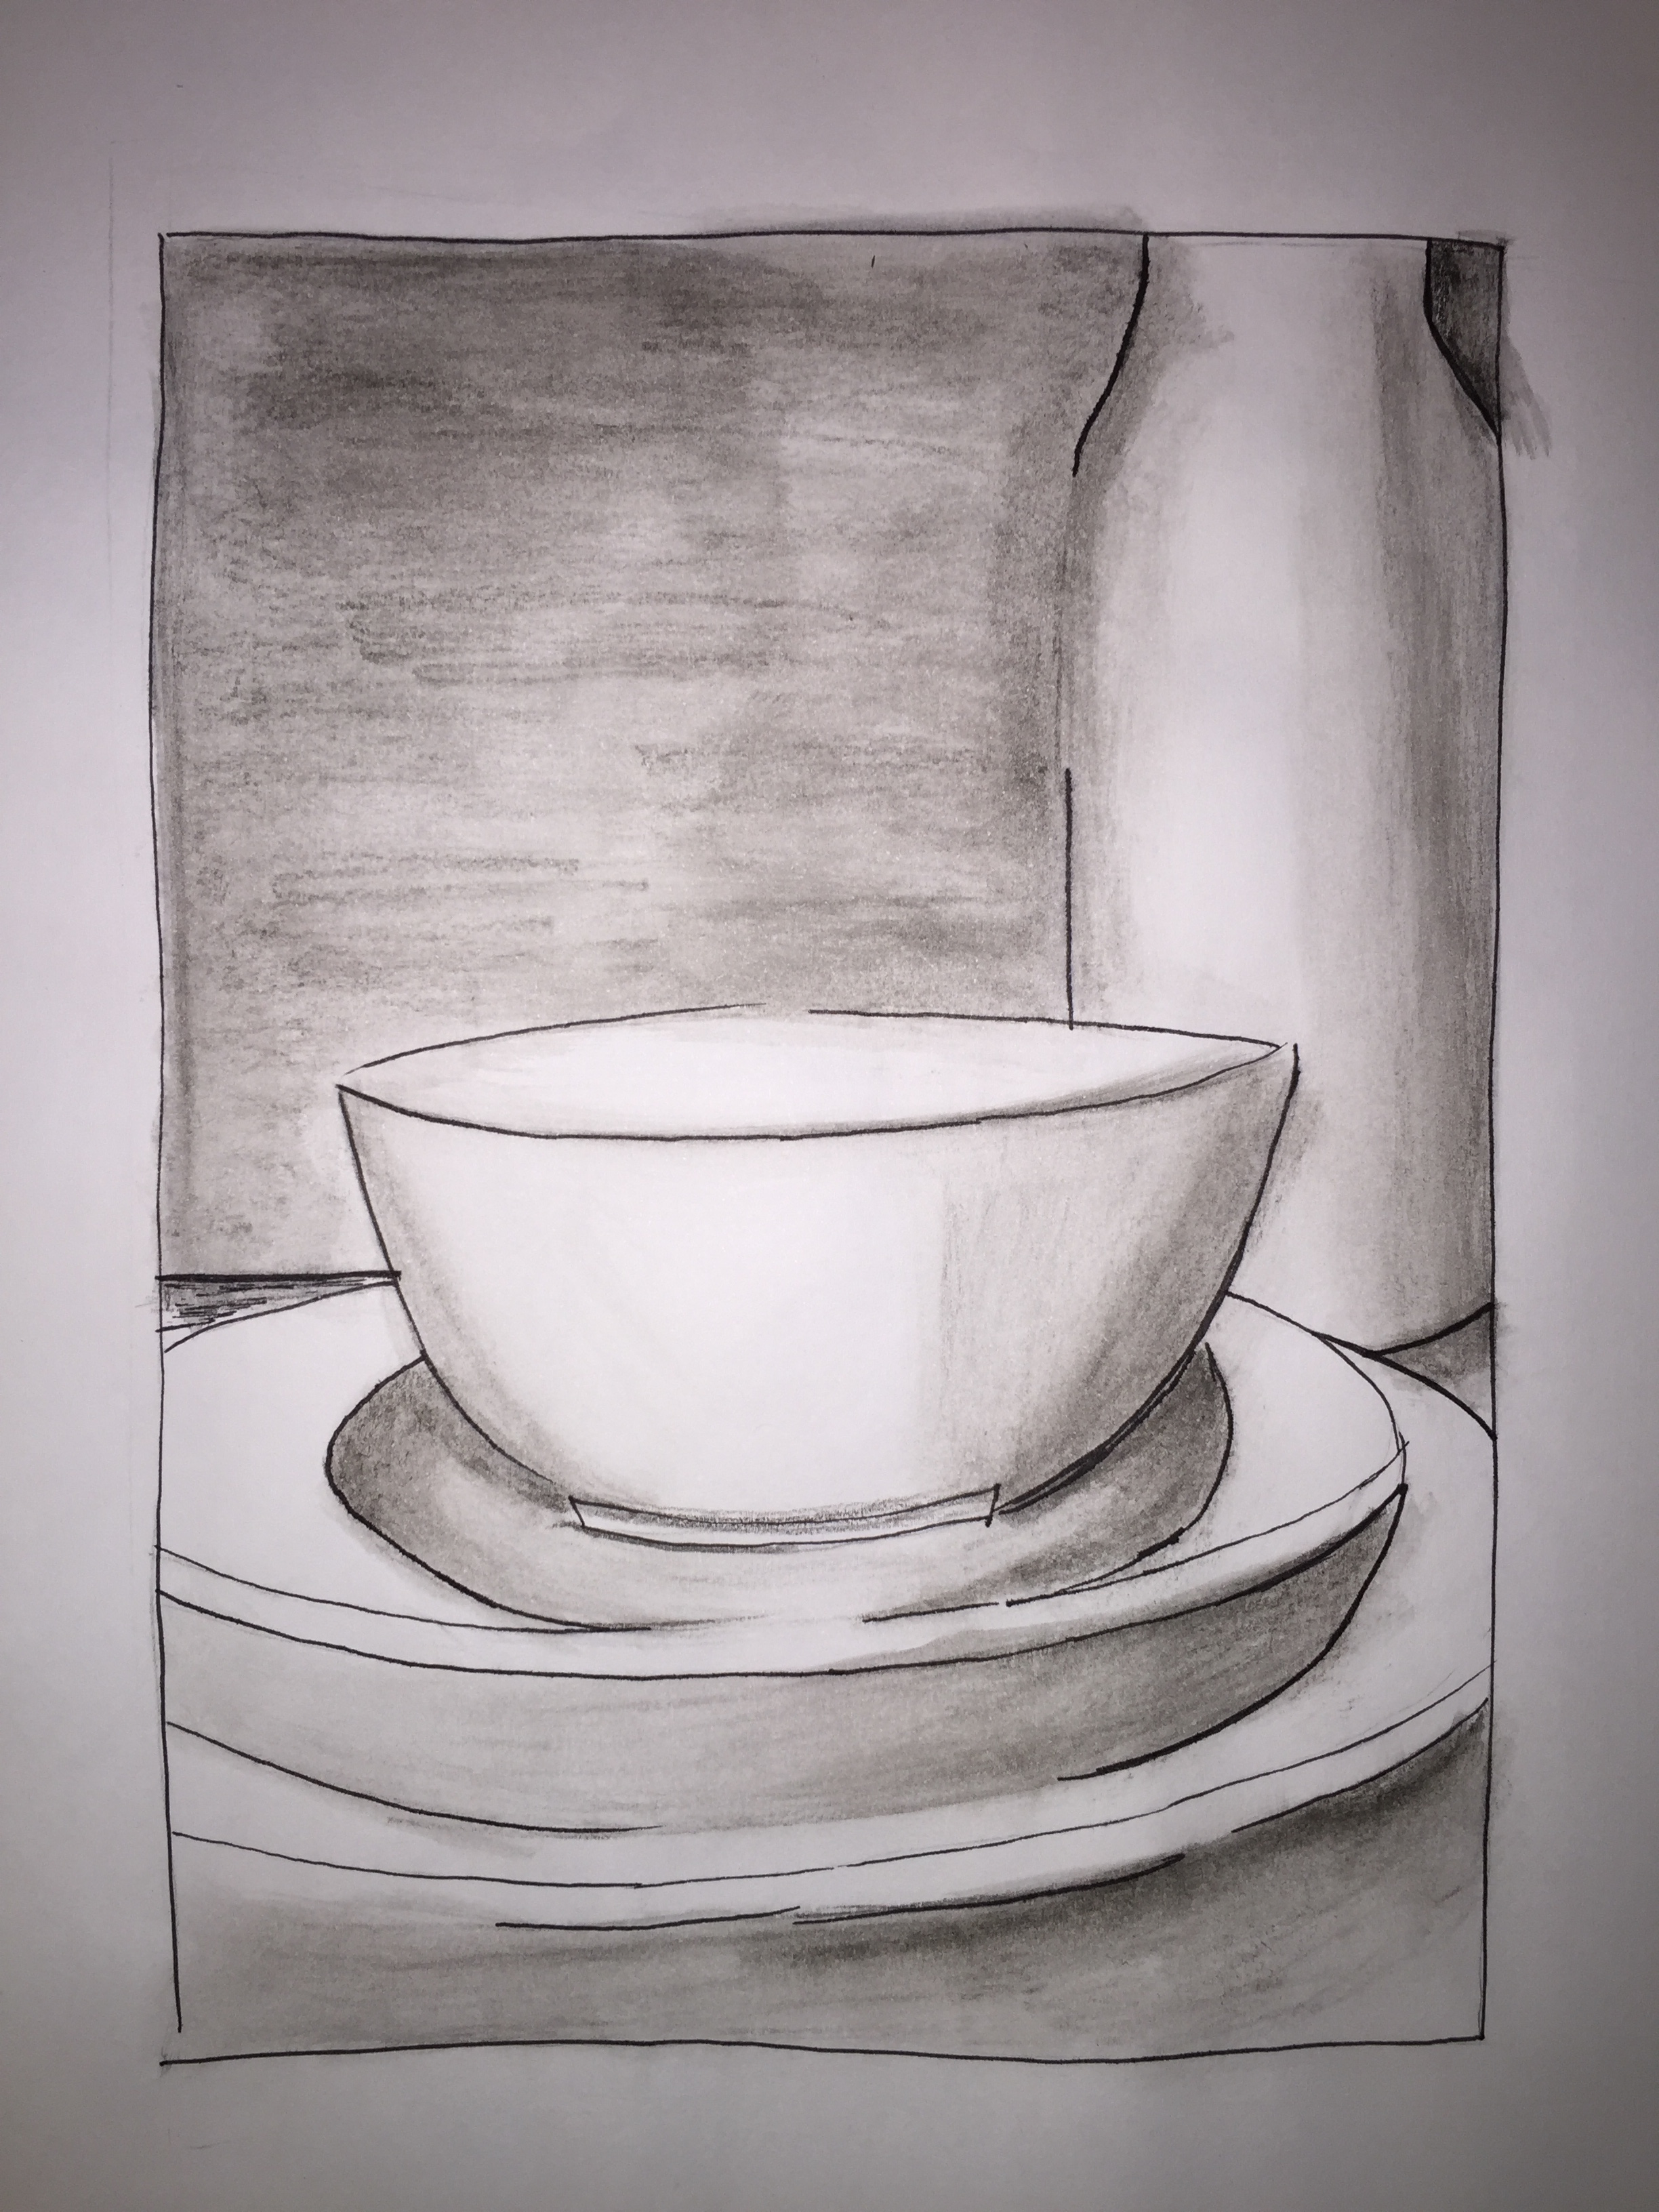 Sketchbook Assignment #1: Simple Forms